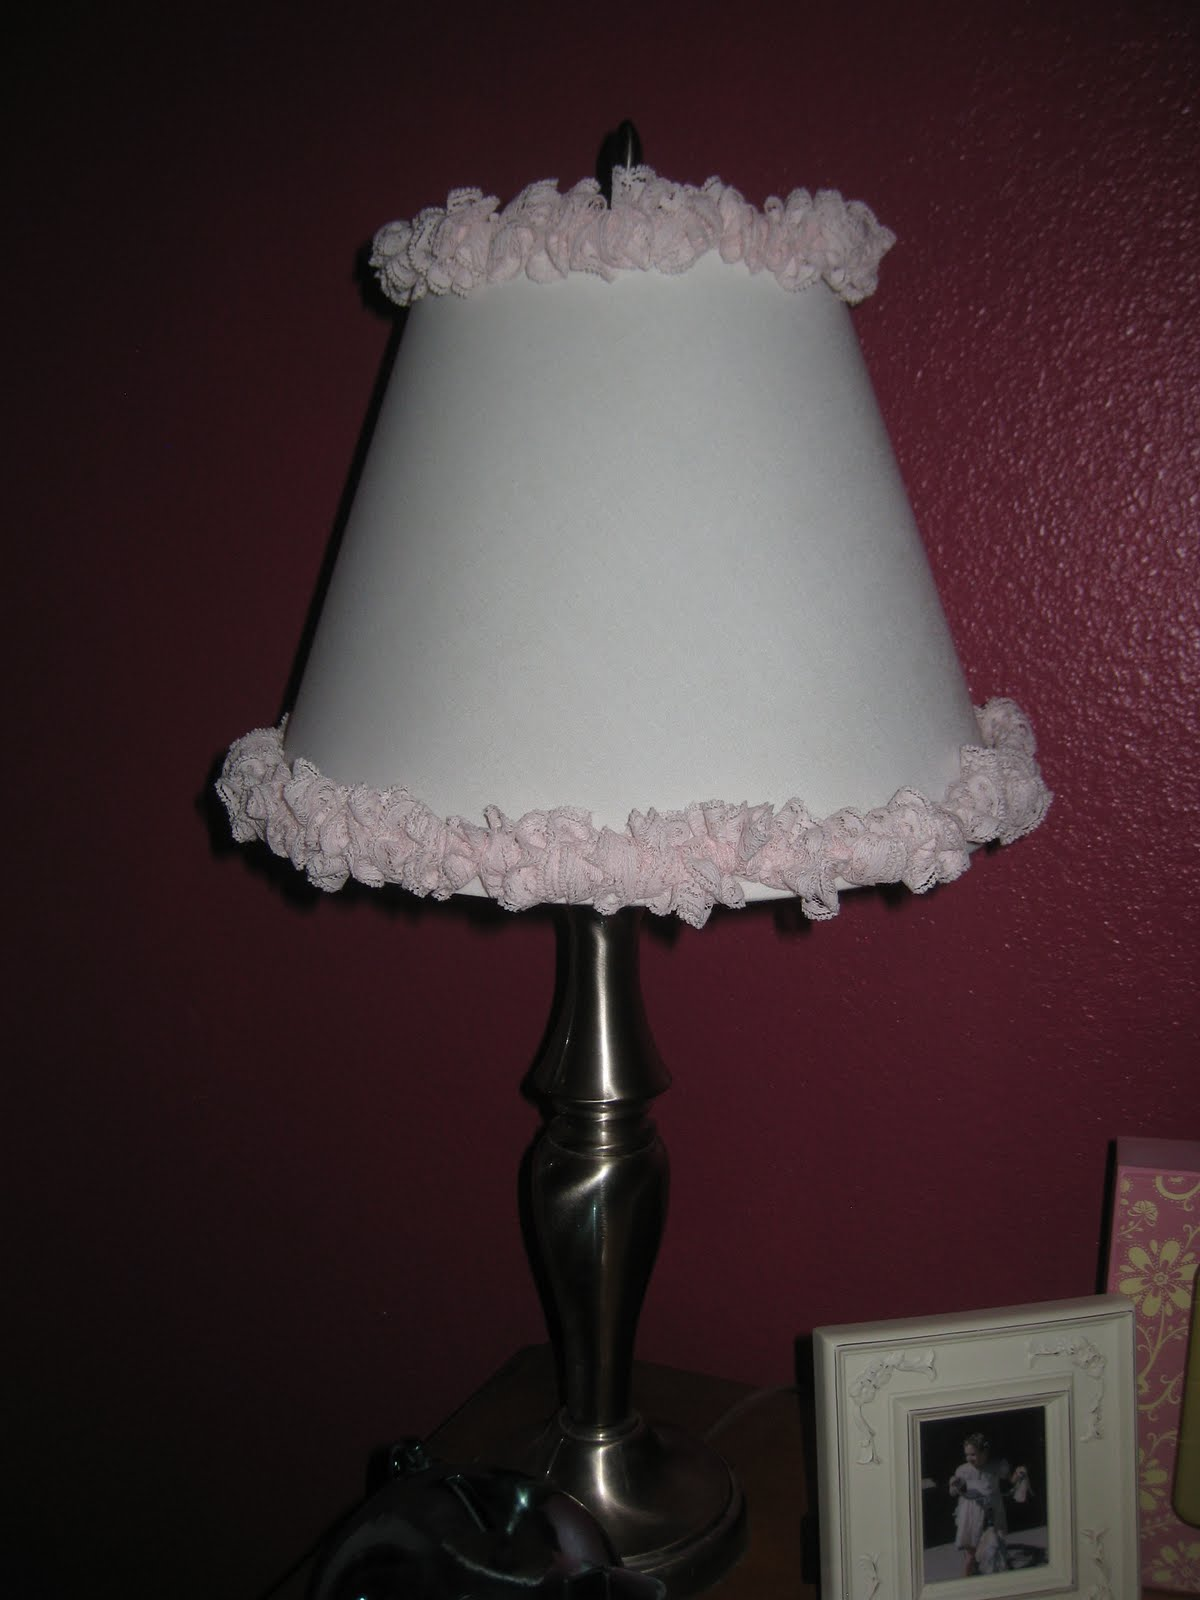 The Princess And The Pea: Girly Lamp